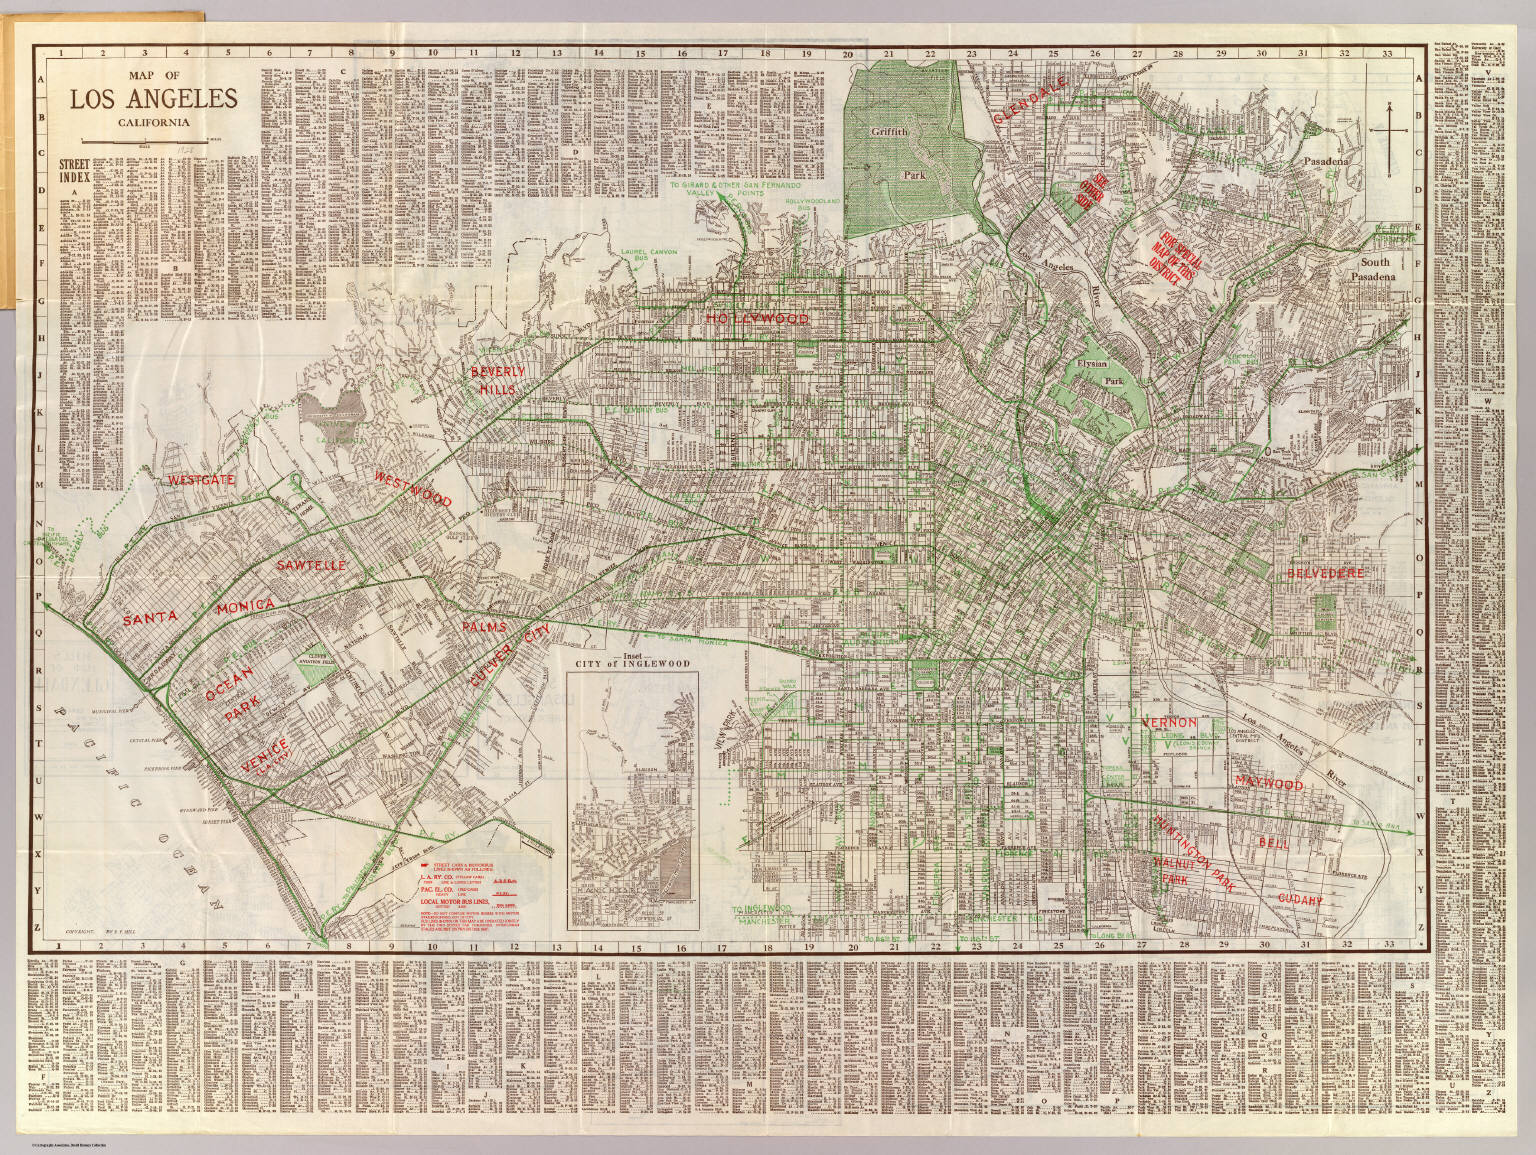 Los Angeles California David Rumsey Historical Map Collection - Buy historical maps